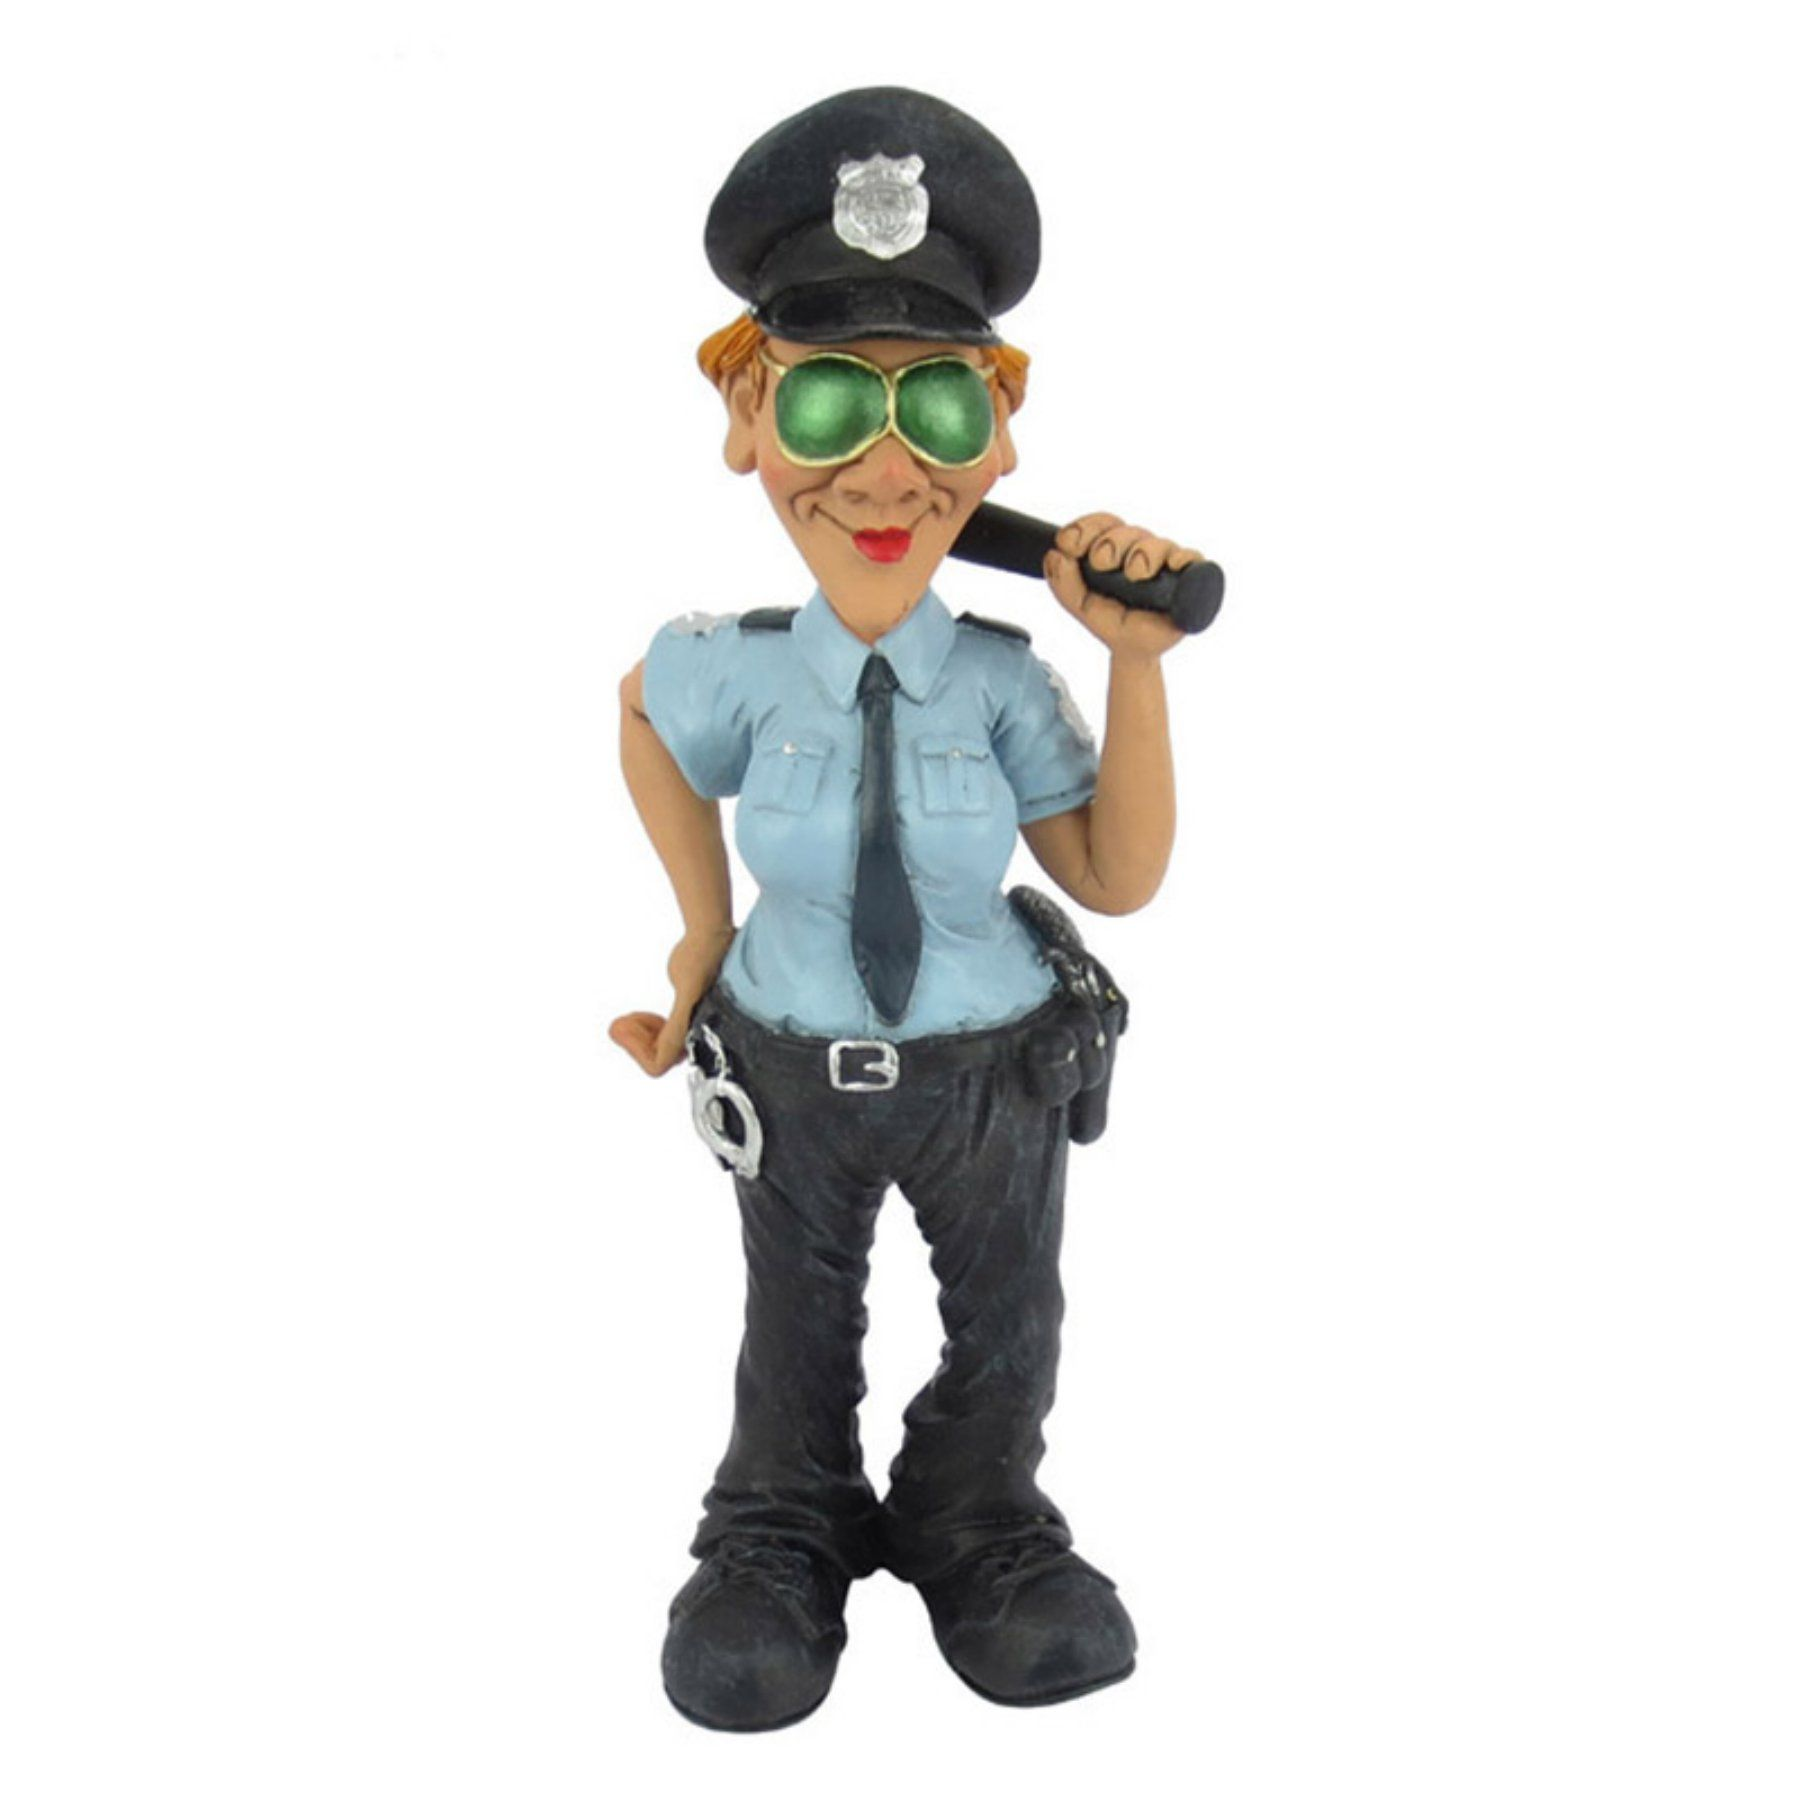 HiLine Gift Ltd. Occupations Police Woman Figurine by